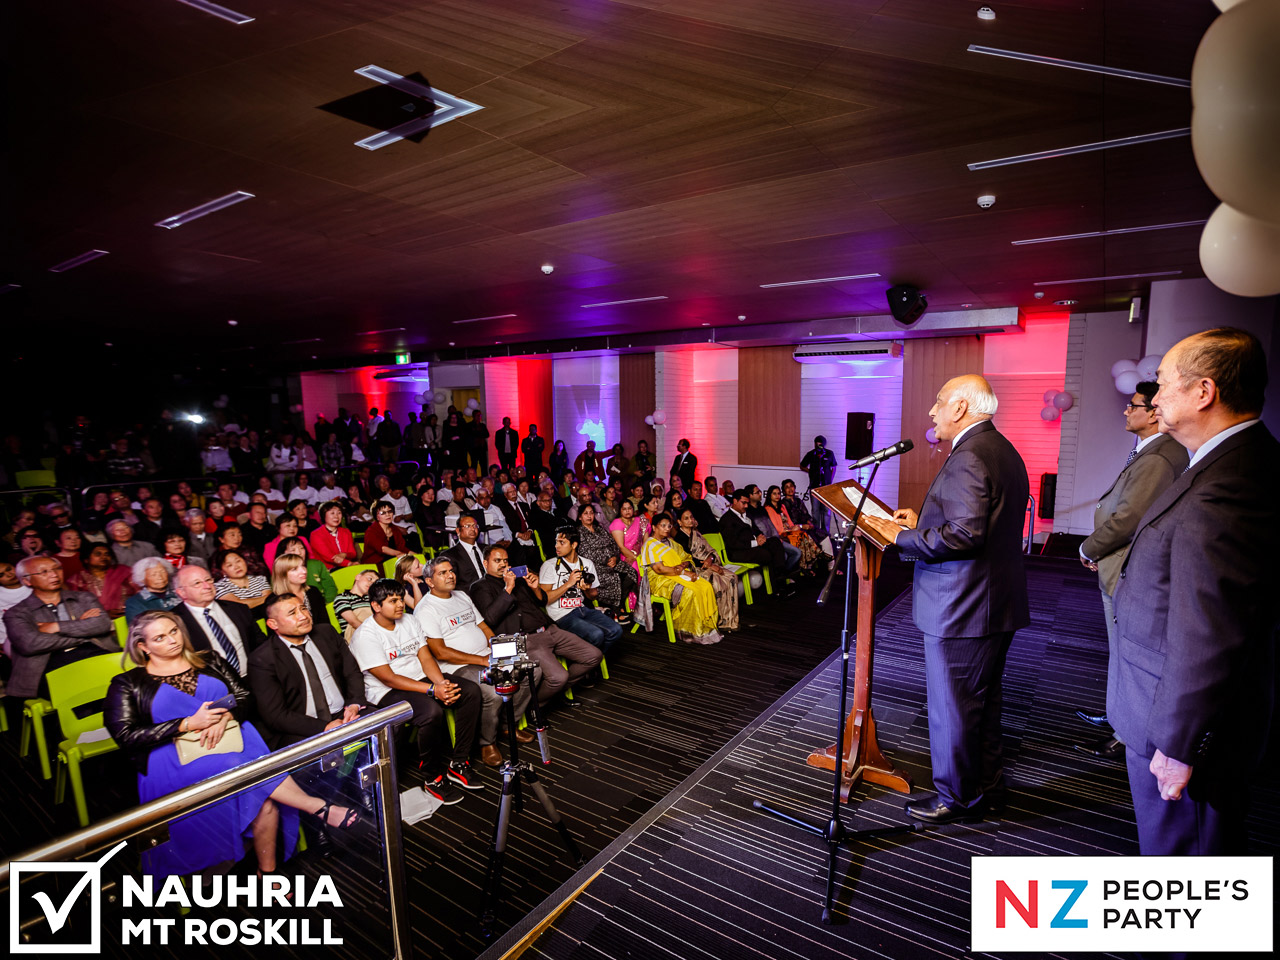 1000s join for launch of NZPP